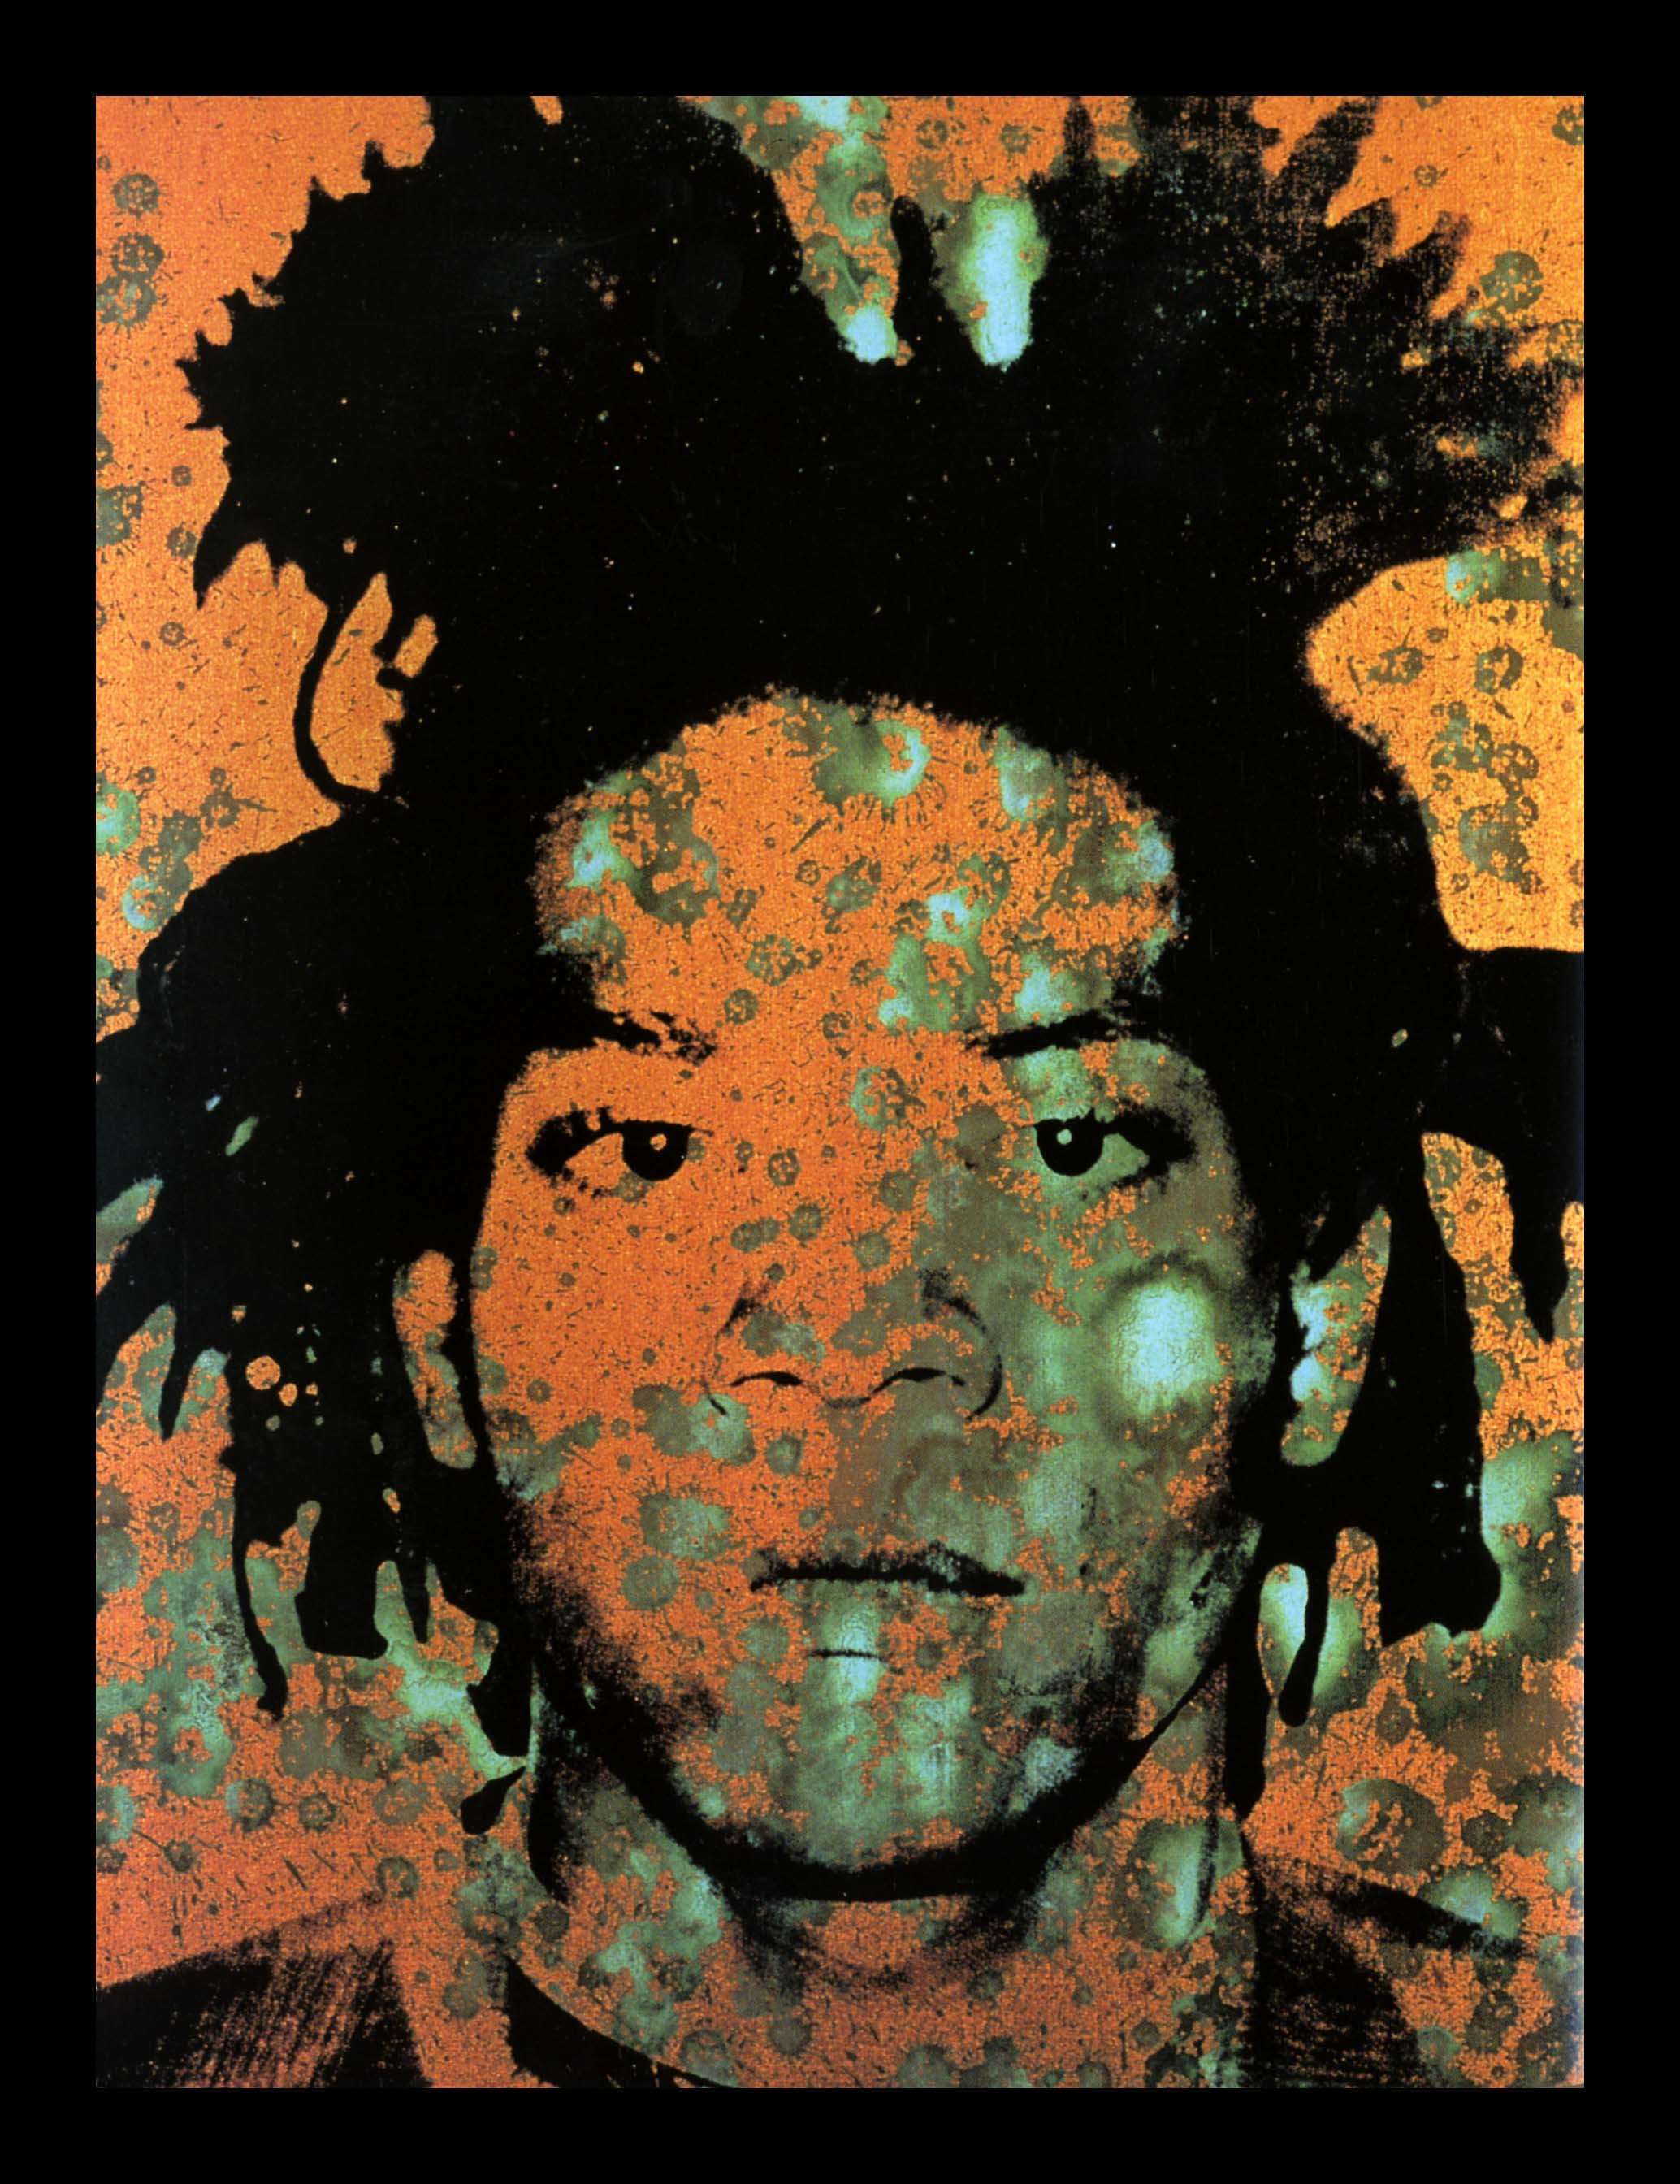 I love Jean Michel Basquiat